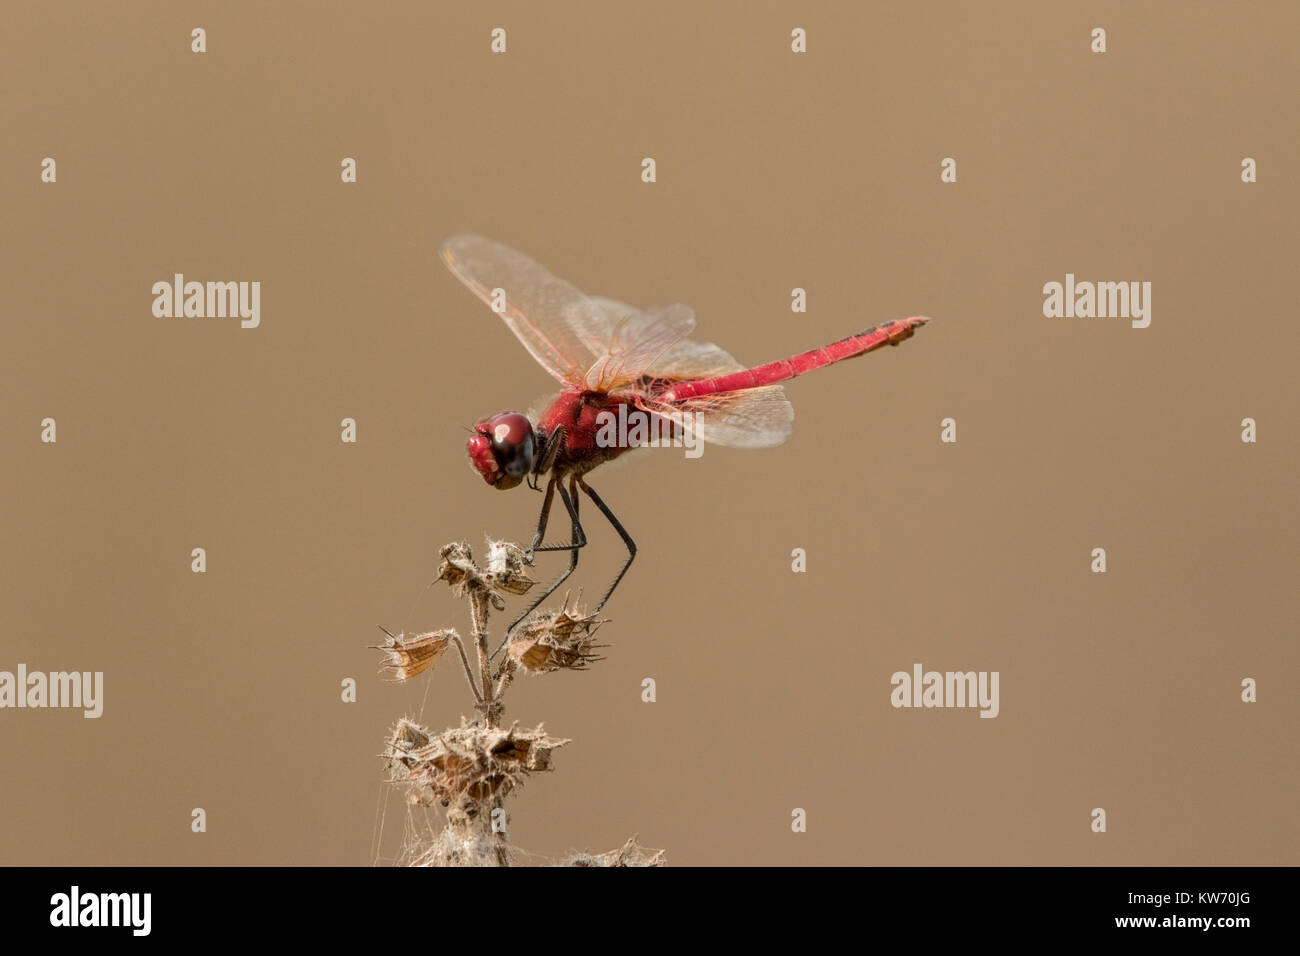 scarlet darter dragonfly or broad scarlet Crocothemis erythraea resting on vegetation, Gambia Stock Photo